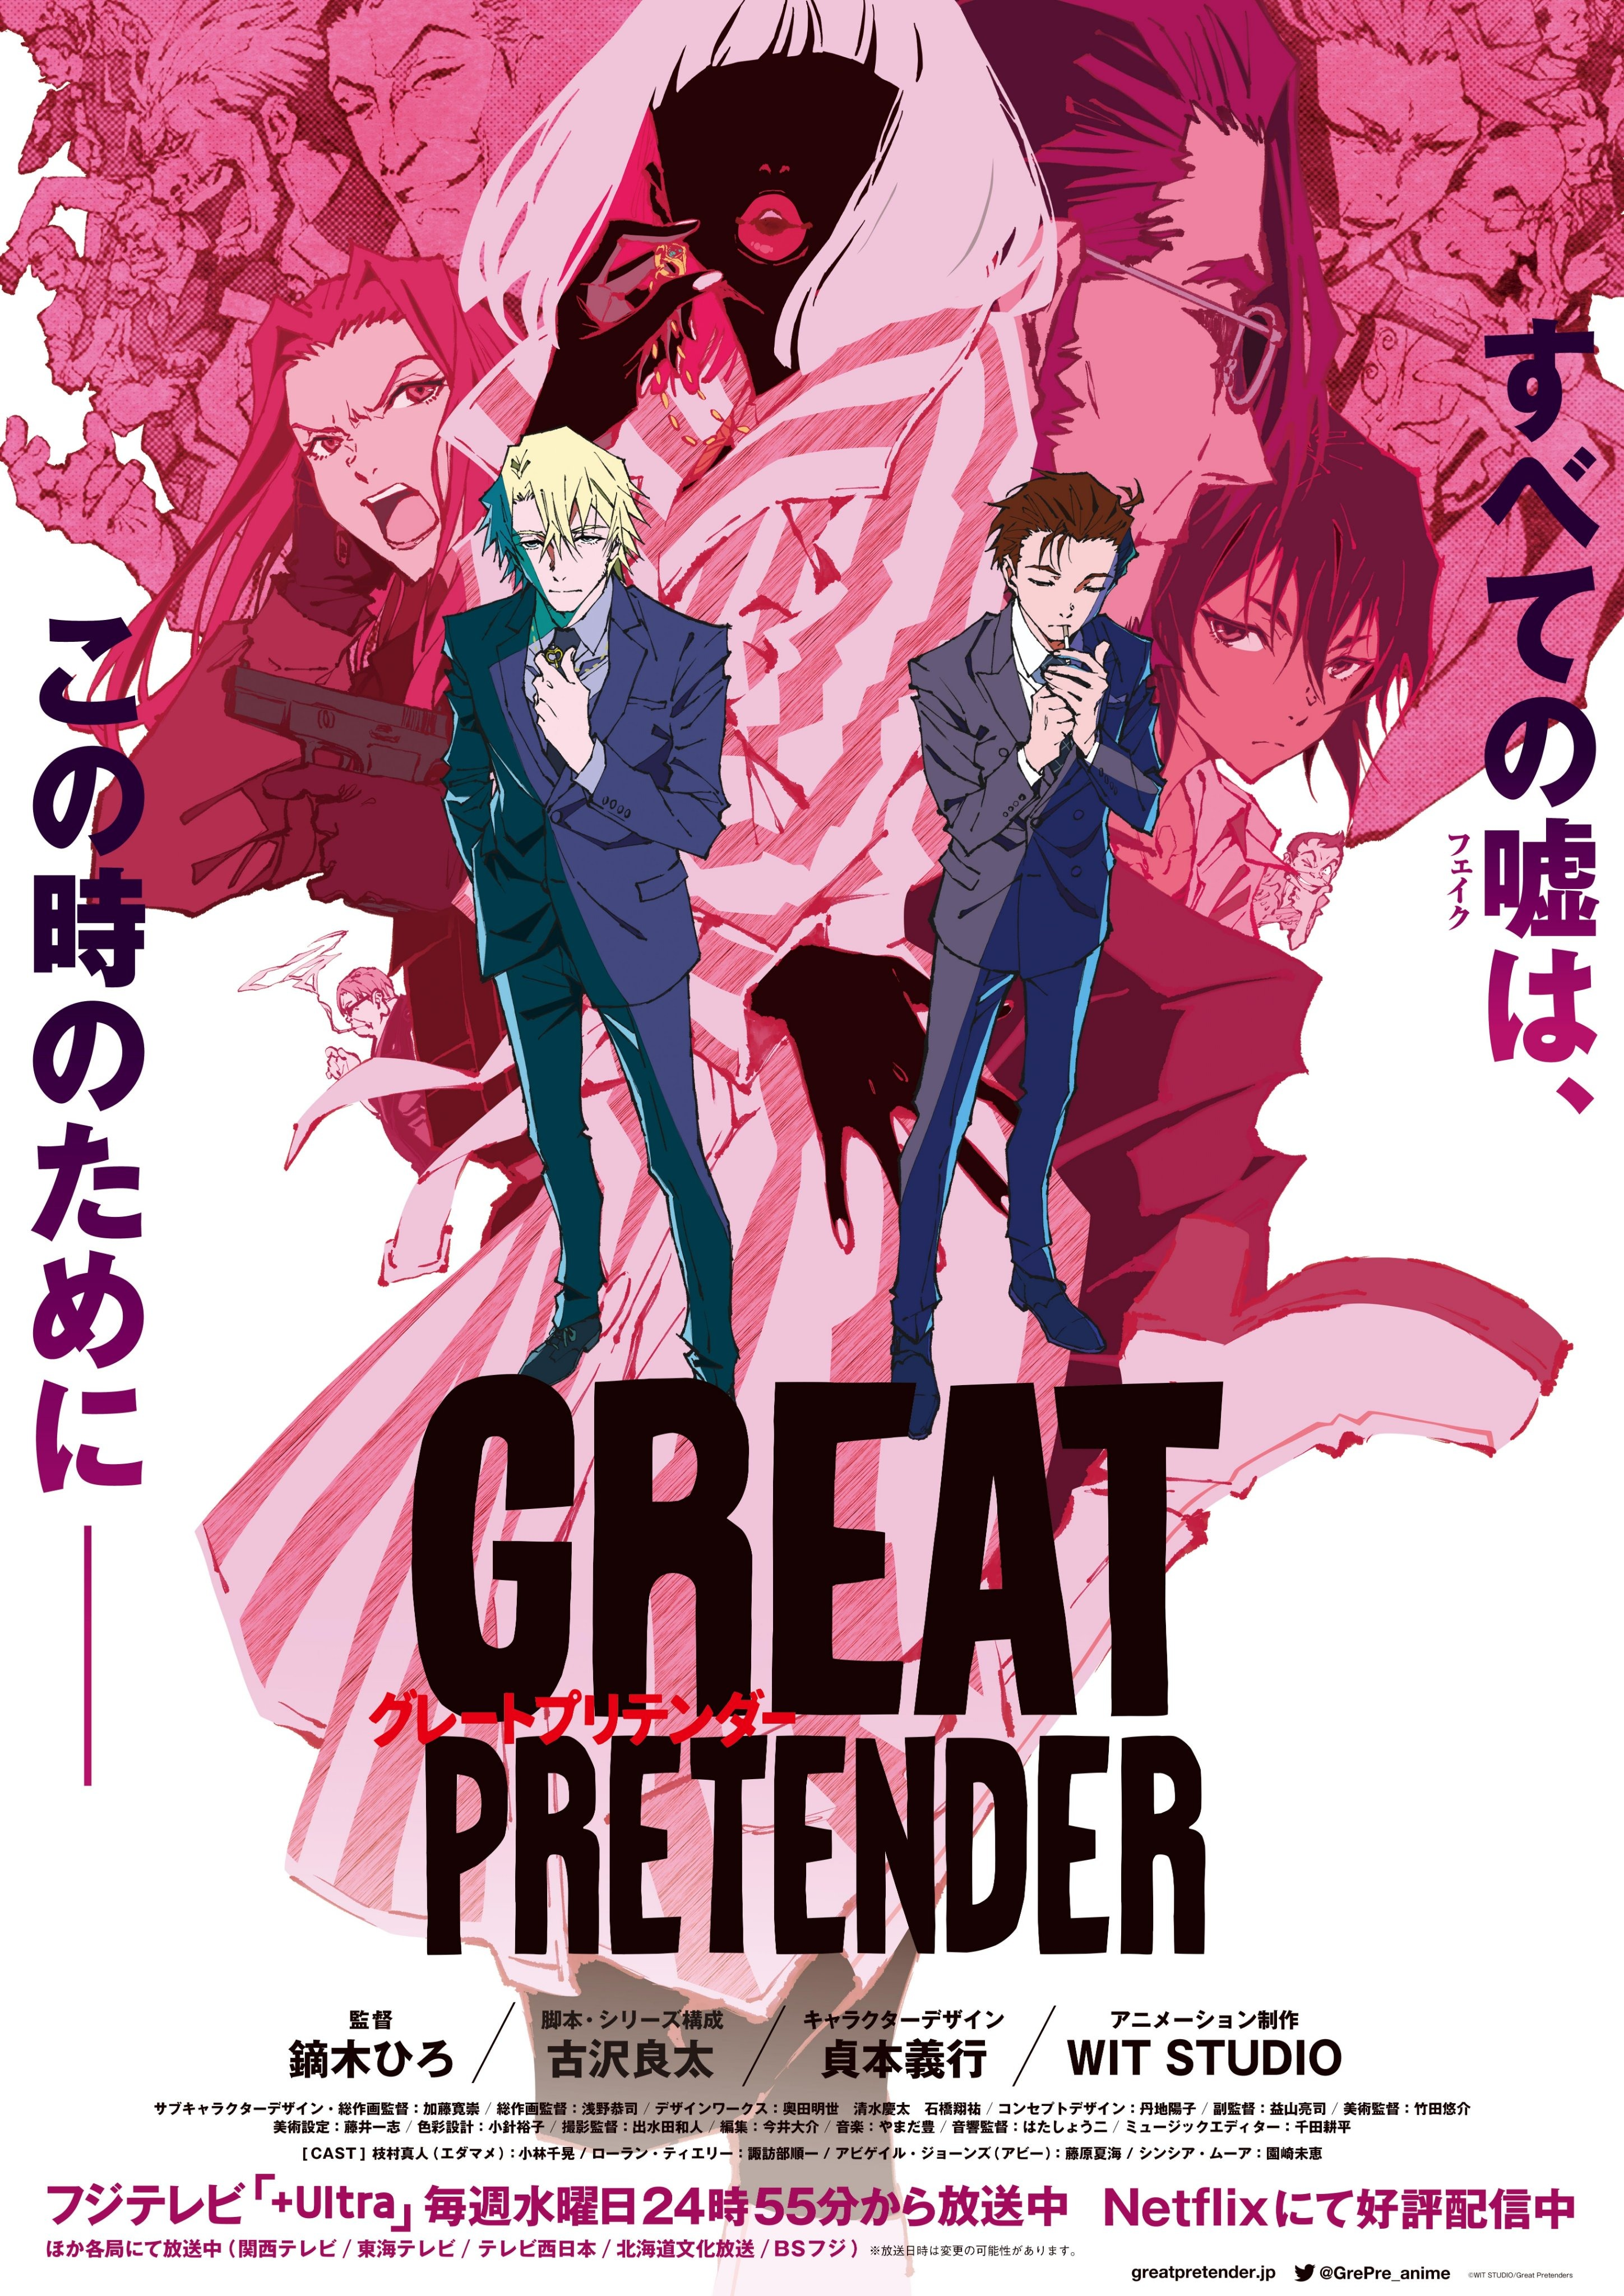 Agenda Culturel ; The Great Pretender